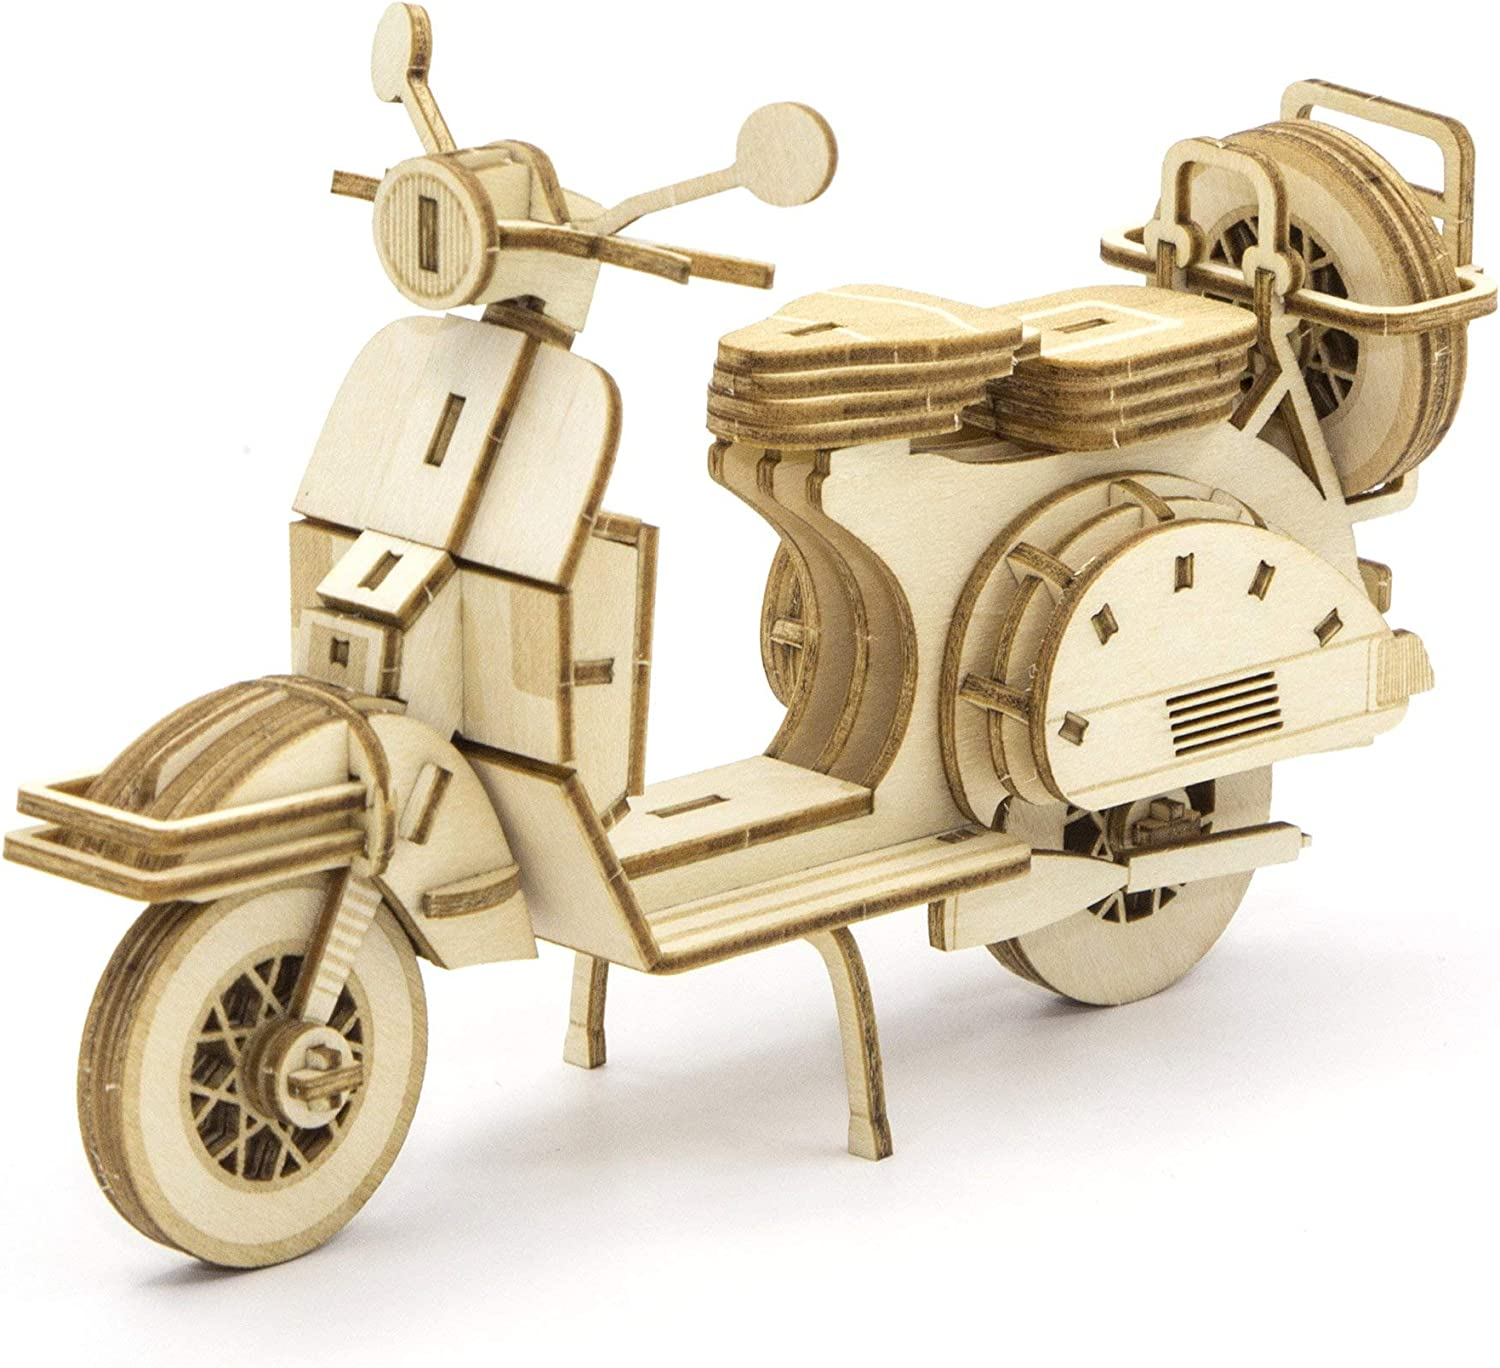 Team Green JIGZLE 2mm Plywood Wooden 3D Puzzle for Teens and Adults Mechanical Models Kits Scooter Classic Vehicles Collection